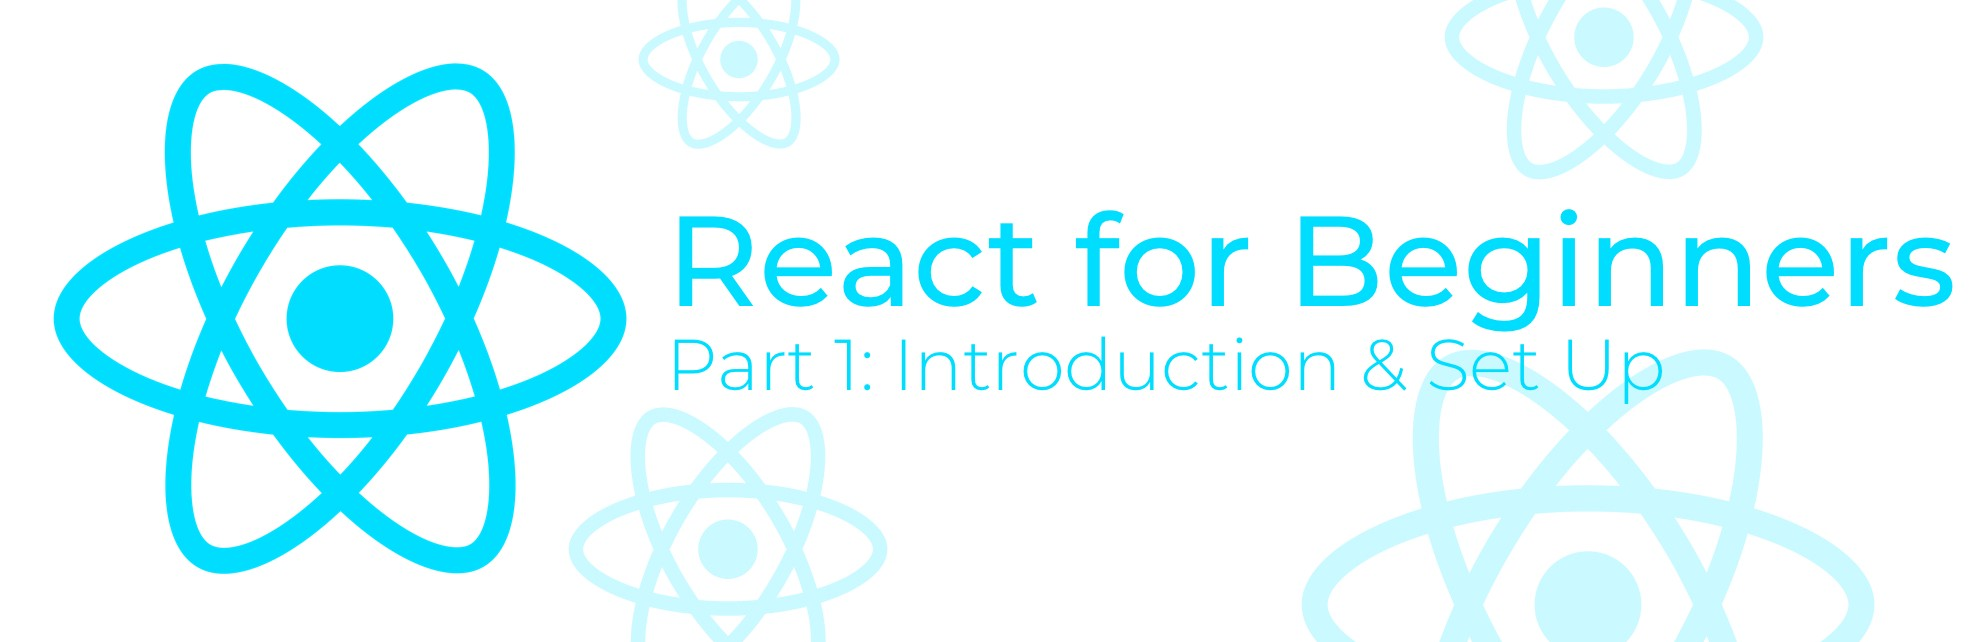 React For Beginners (Part 1) - codeburst